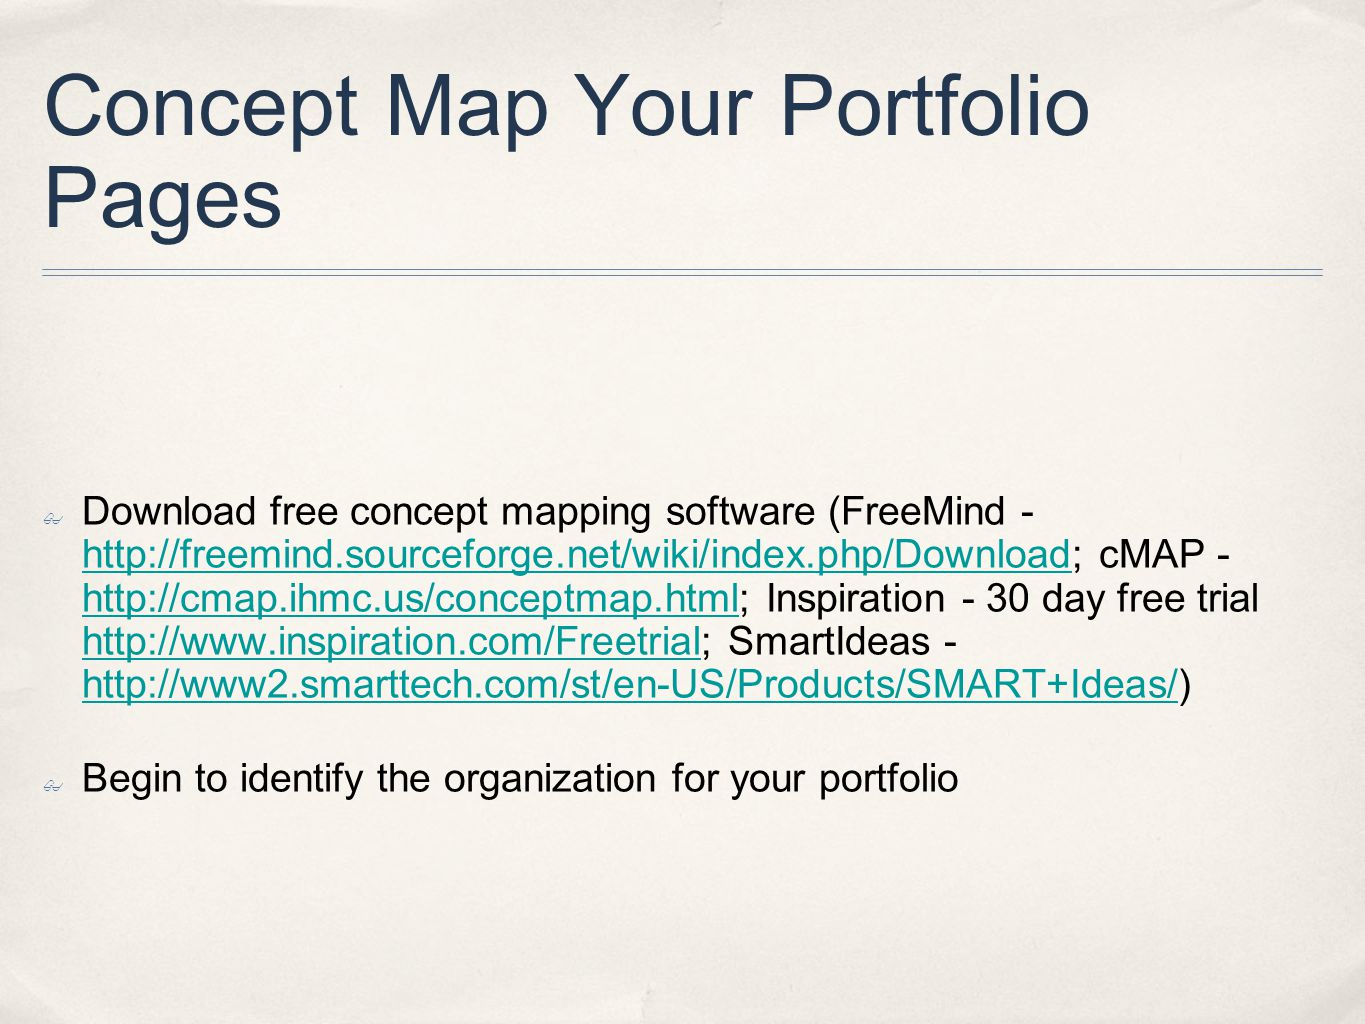 Concept Map Your Portfolio Pages ✤ Download free concept mapping software (FreeMind - http://freemind.sourceforge.net/wiki/index.php/Download; cMAP - http://cmap.ihmc.us/conceptmap.html; Inspiration - 30 day free trial http://www.inspiration.com/Freetrial; SmartIdeas - http://www2.smarttech.com/st/en-US/Products/SMART+Ideas/) http://freemind.sourceforge.net/wiki/index.php/Download http://cmap.ihmc.us/conceptmap.html http://www.inspiration.com/Freetrial http://www2.smarttech.com/st/en-US/Products/SMART+Ideas/ ✤ Begin to identify the organization for your portfolio